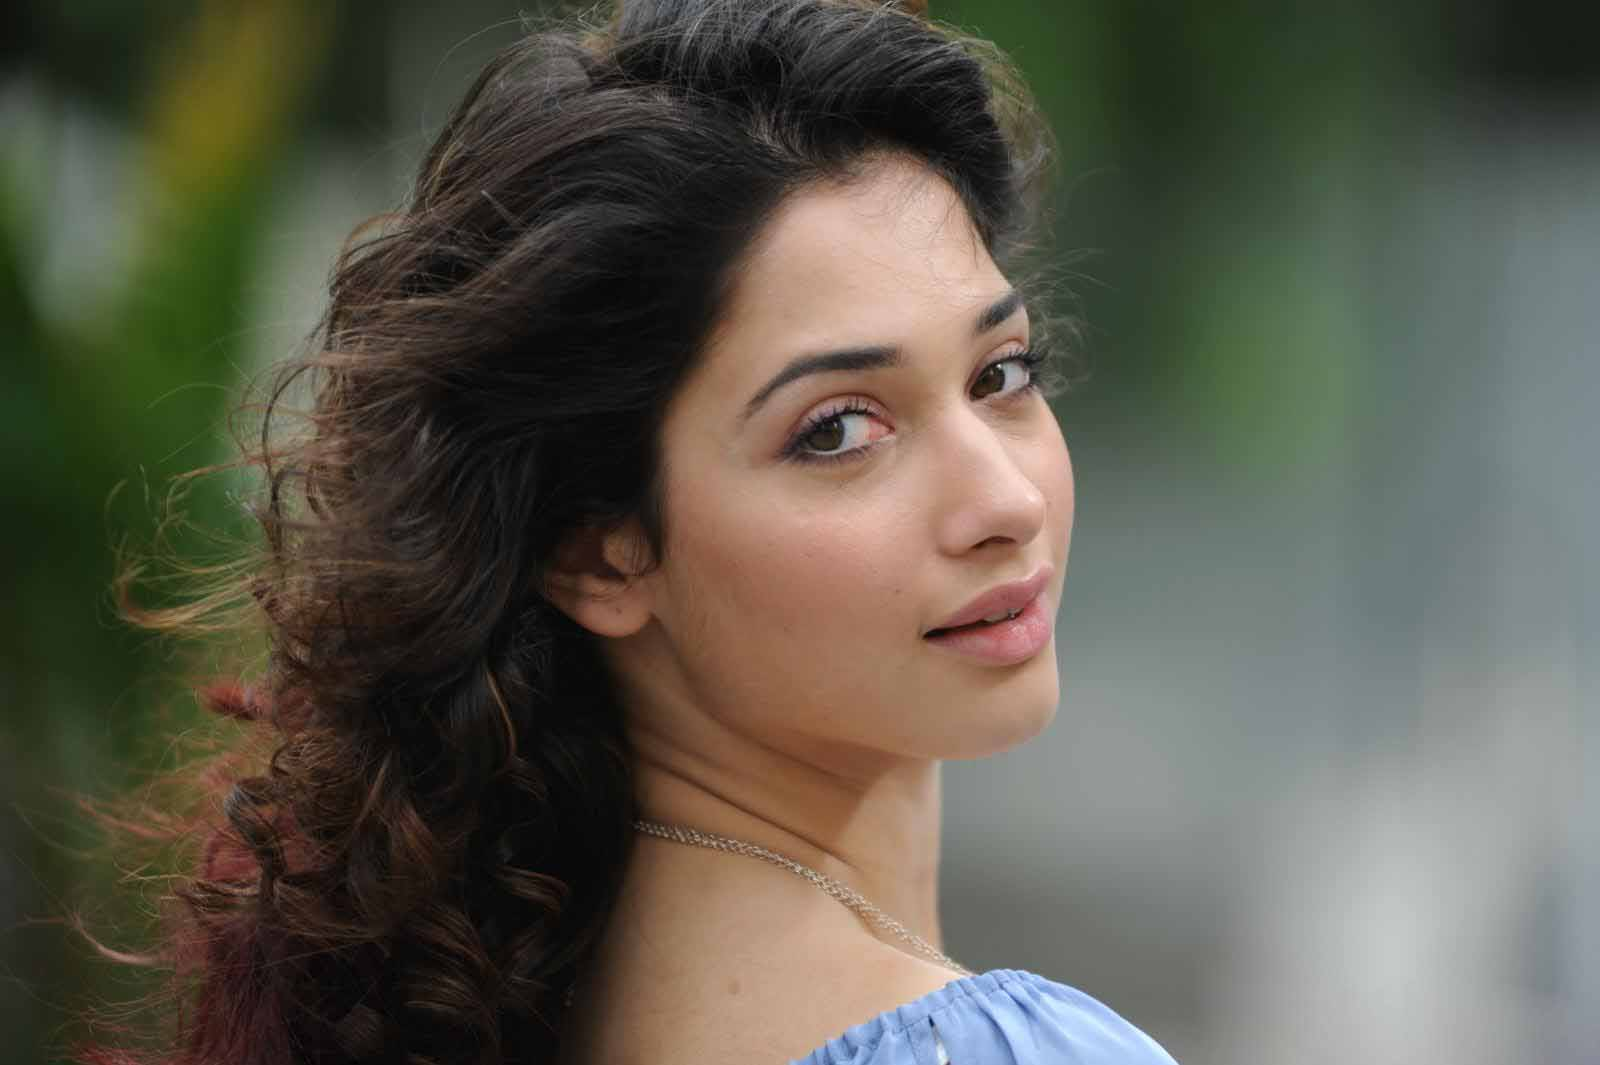 Tamanna Photo Gallery: Wallpaper India: Tamanna Latest Sizzling Hot Photoshoot